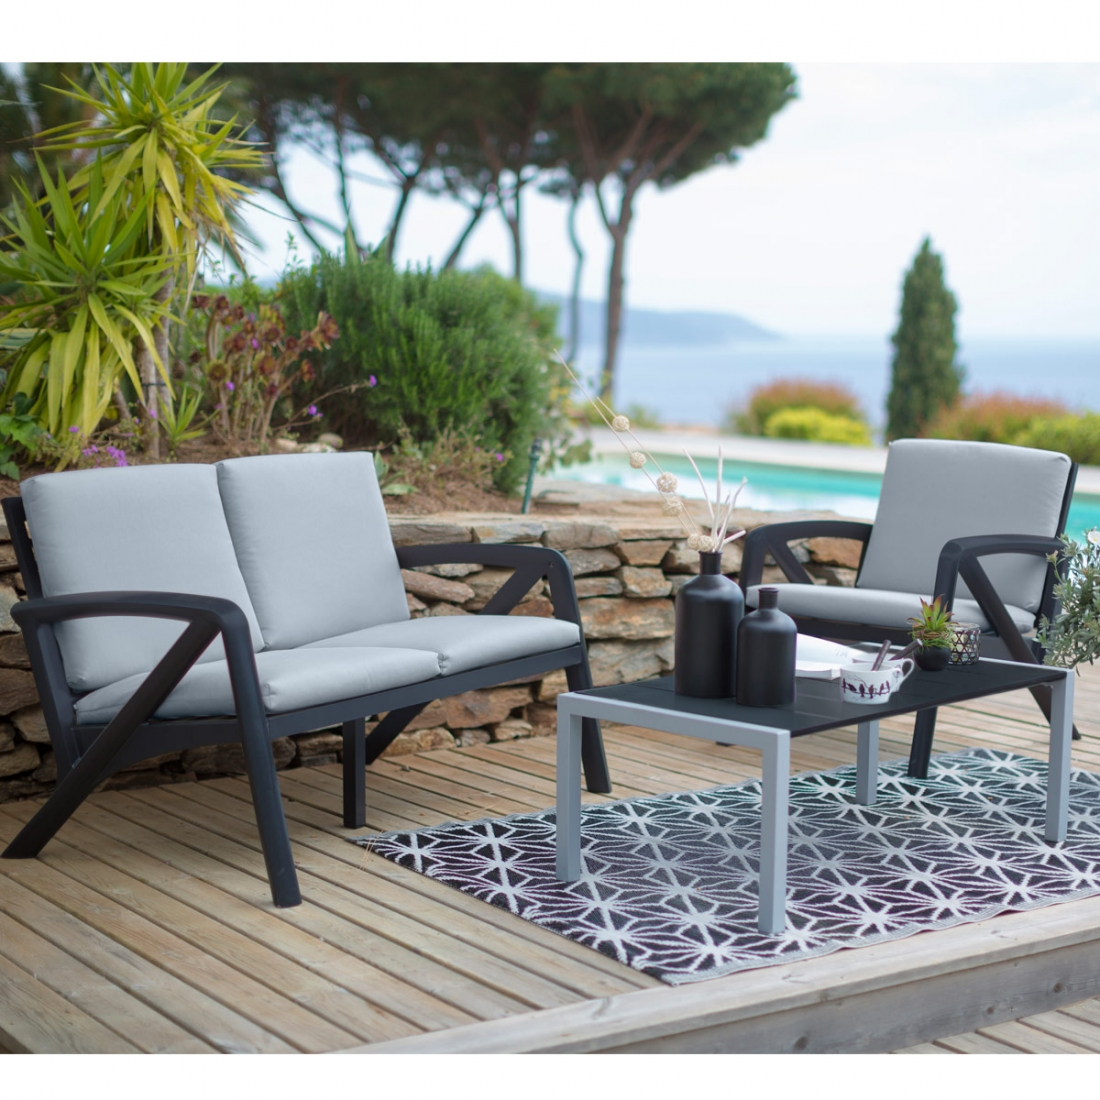 Salon de jardin lounge sunday barcelone design grosfillex for Destockage plantes jardin